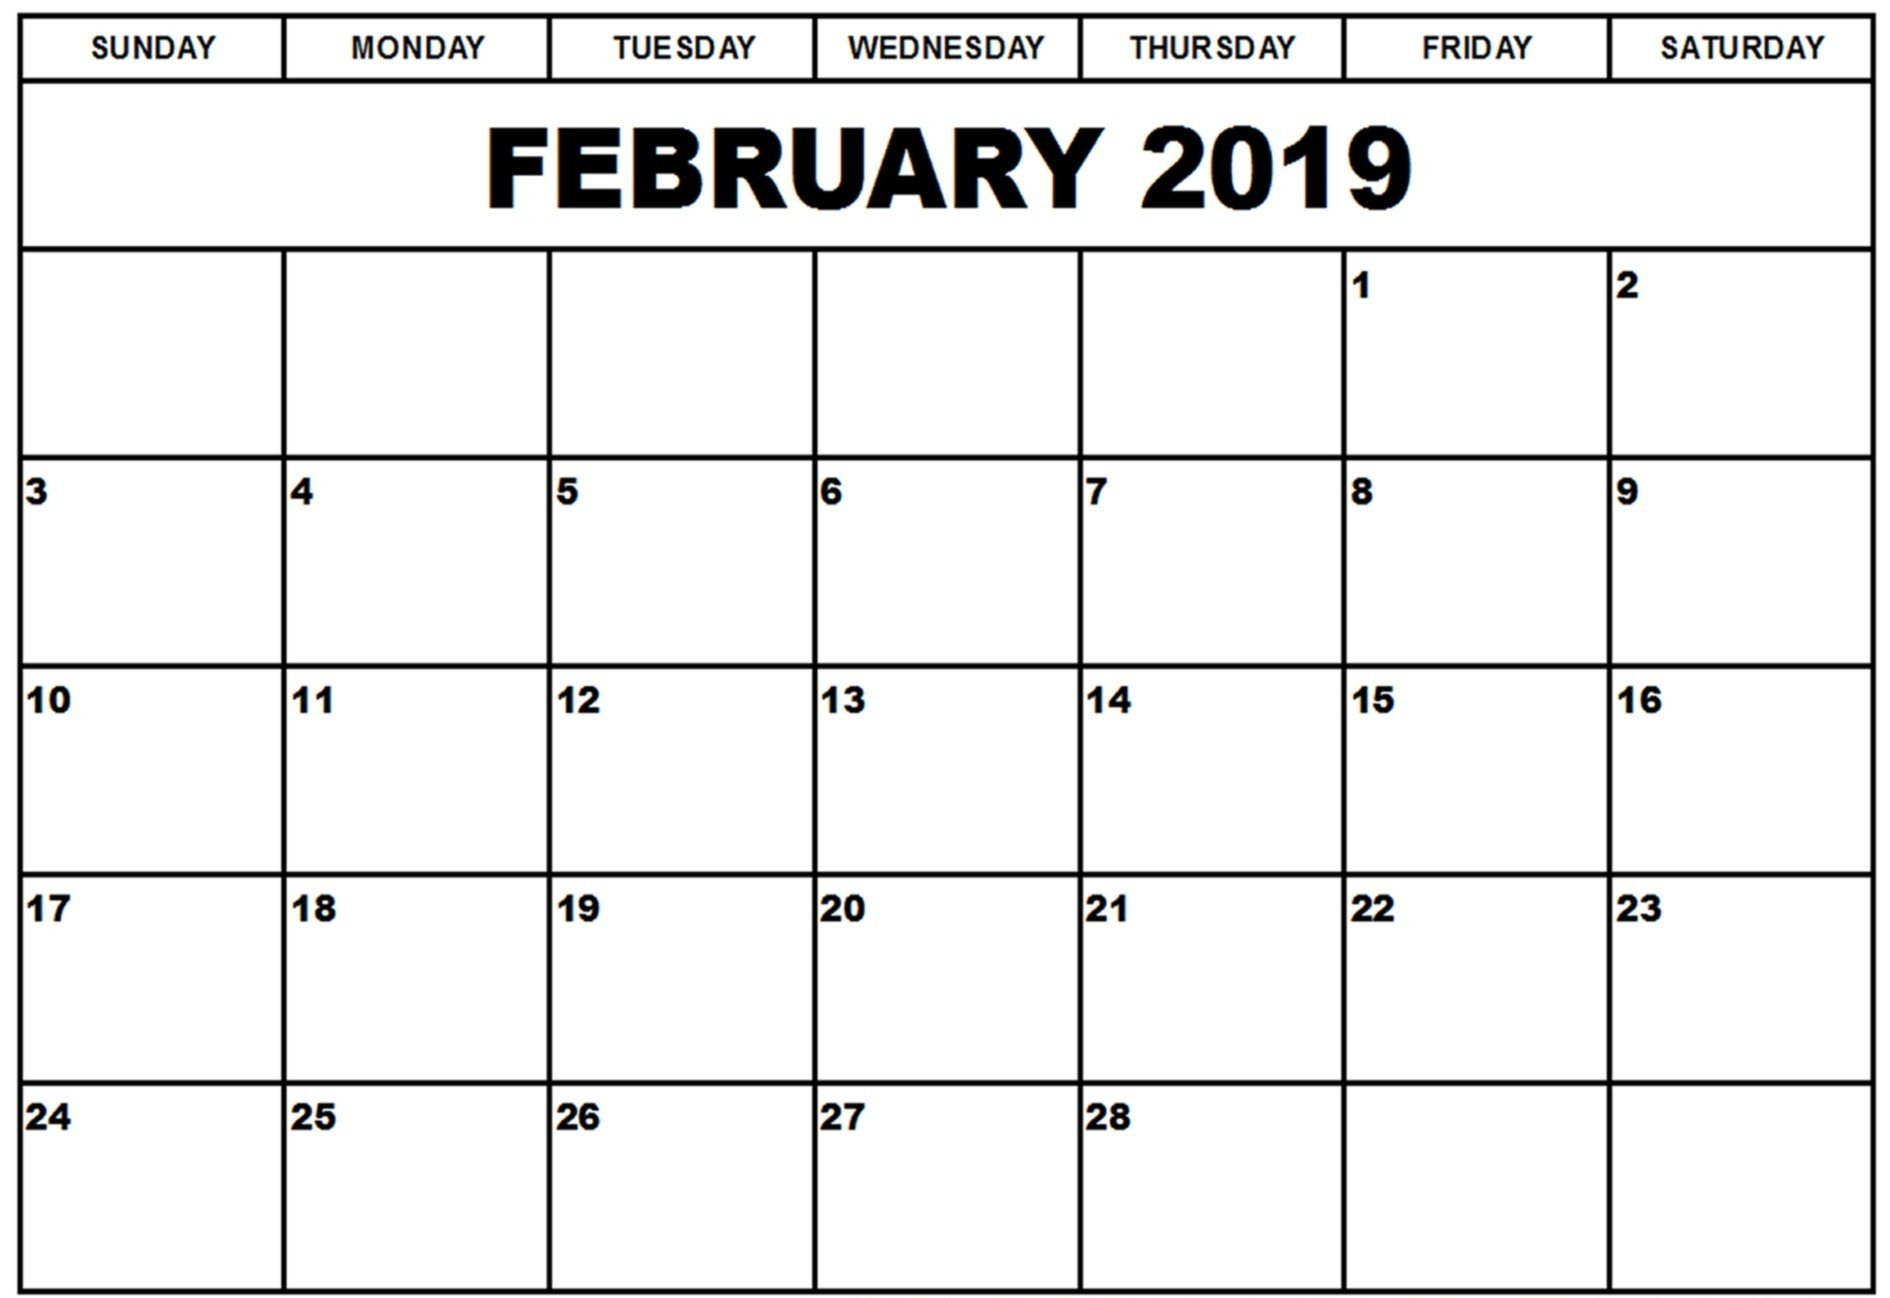 Calendar 2019 February Month - Printable Calendar Templates Calendar Of 2019 February